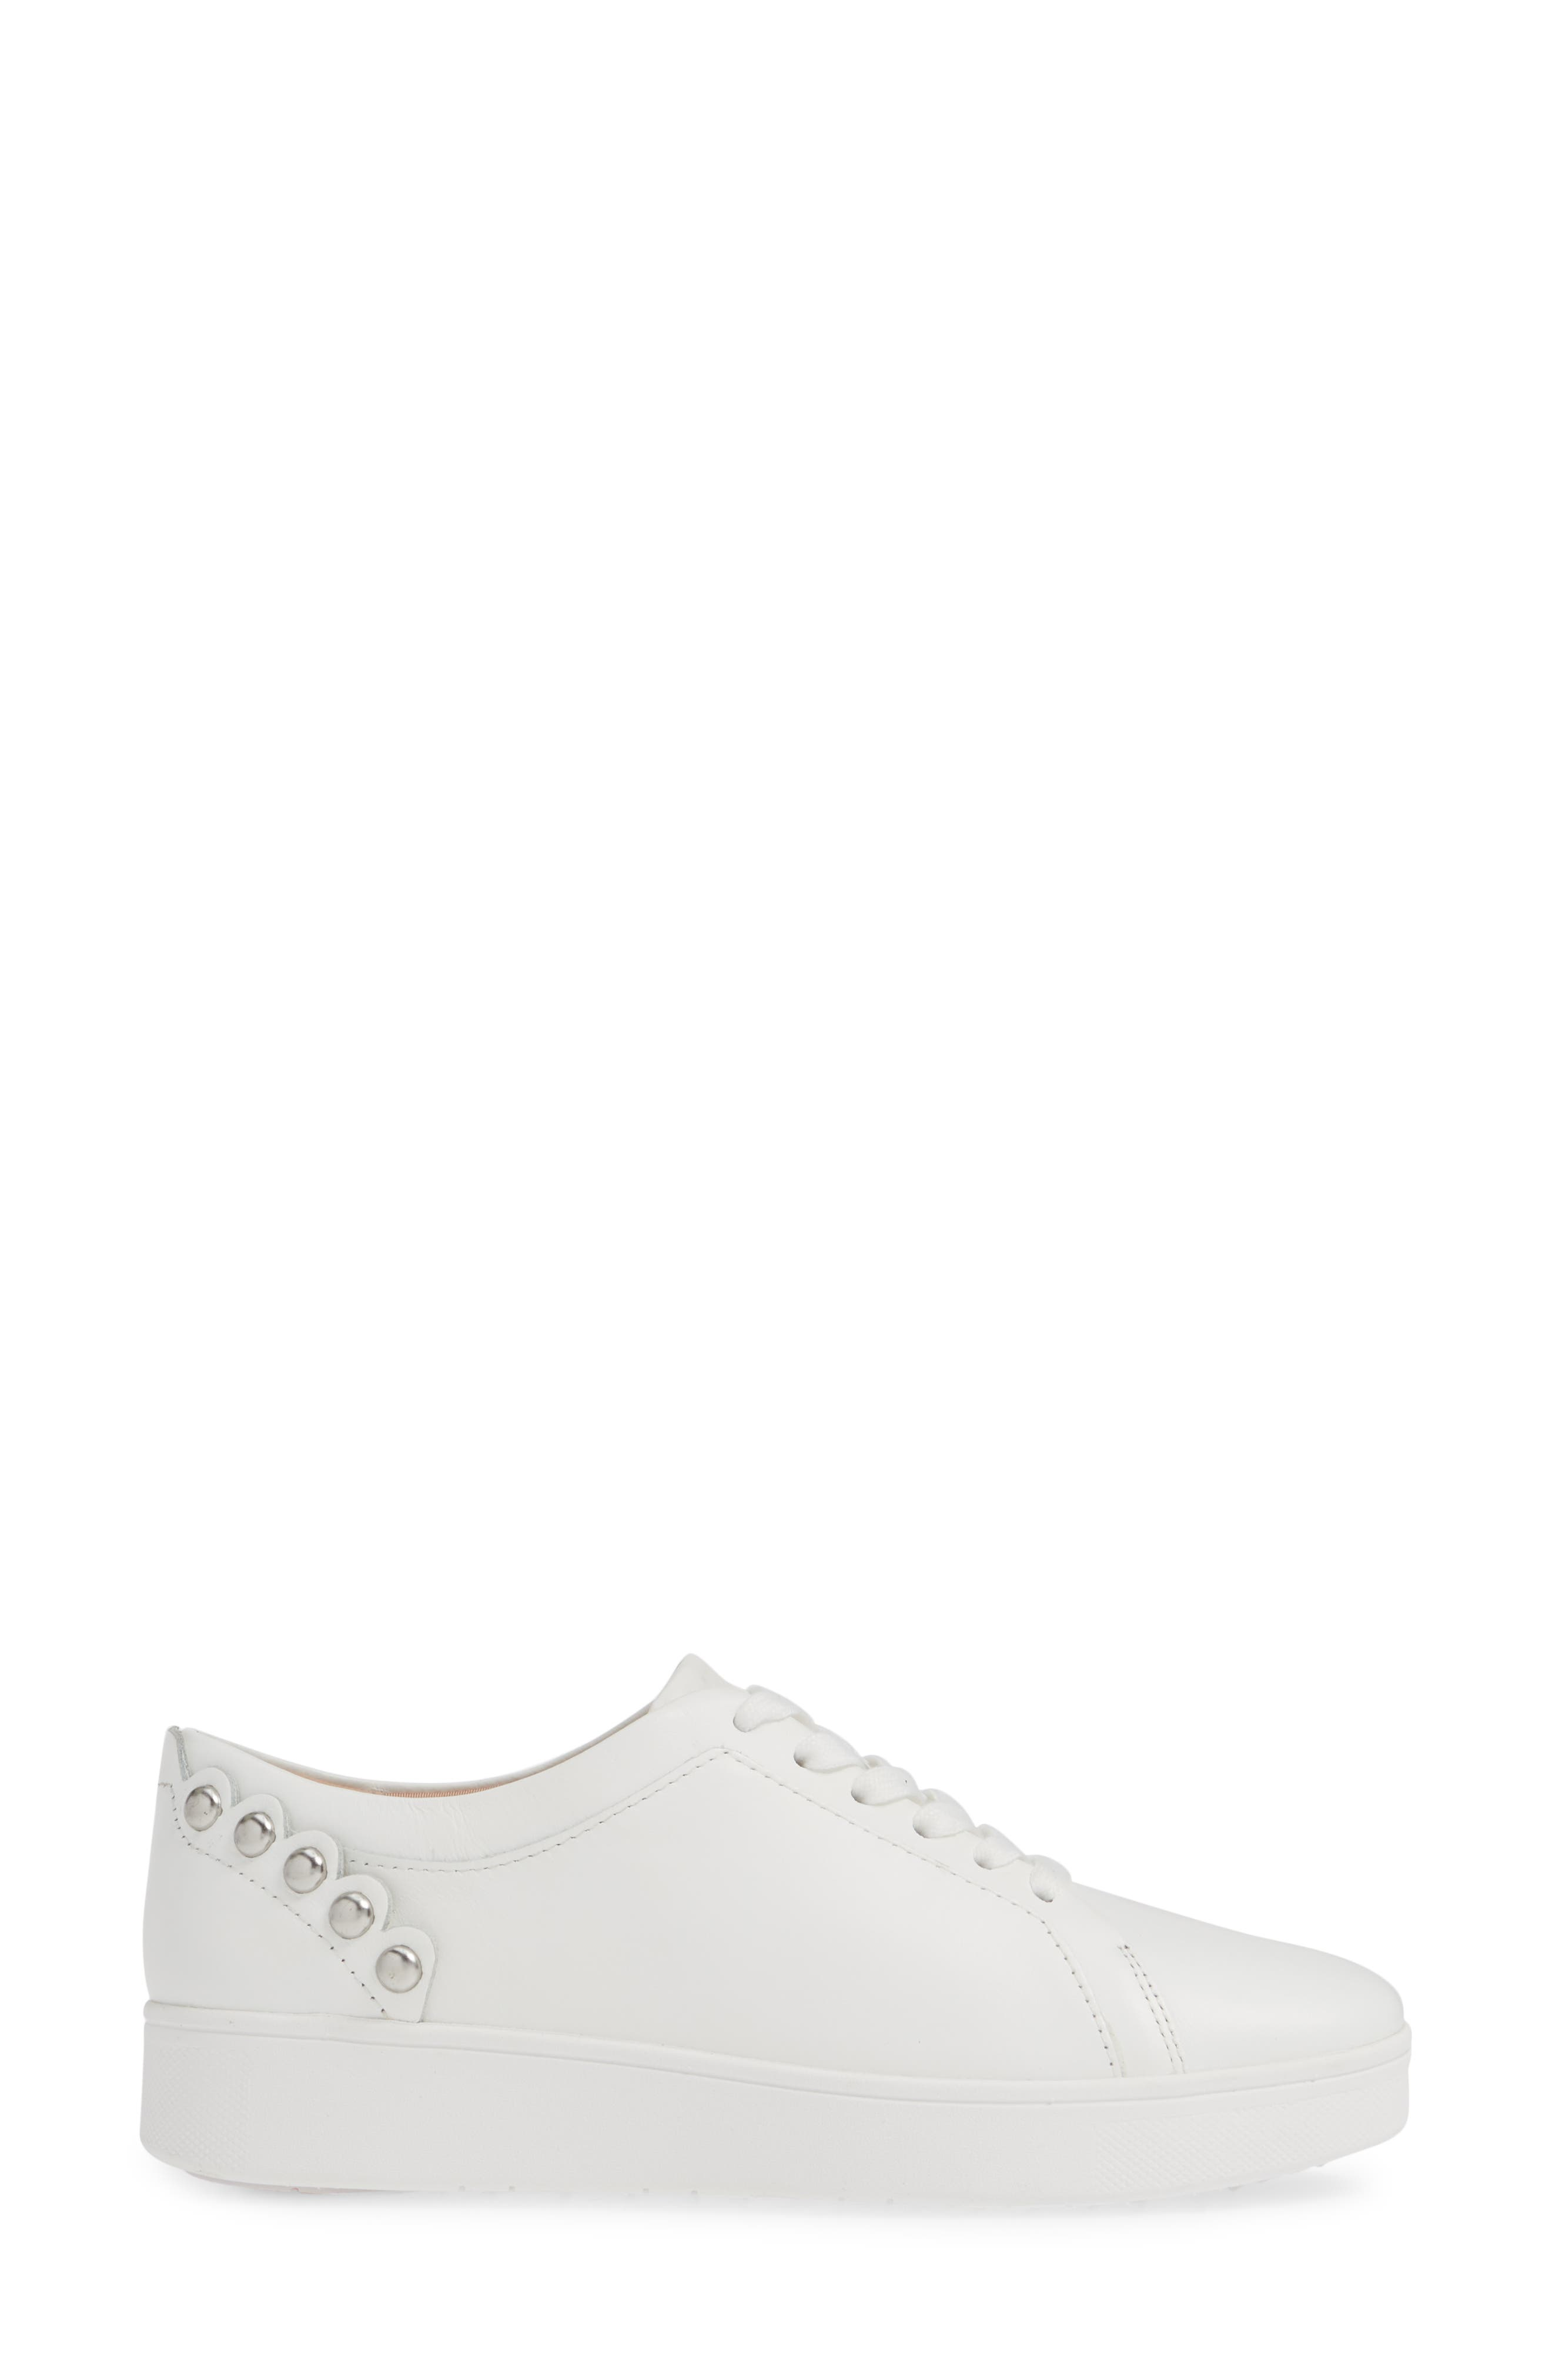 FITFLOP, Rally Studded Sneaker, Alternate thumbnail 3, color, URBAN WHITE LEATHER